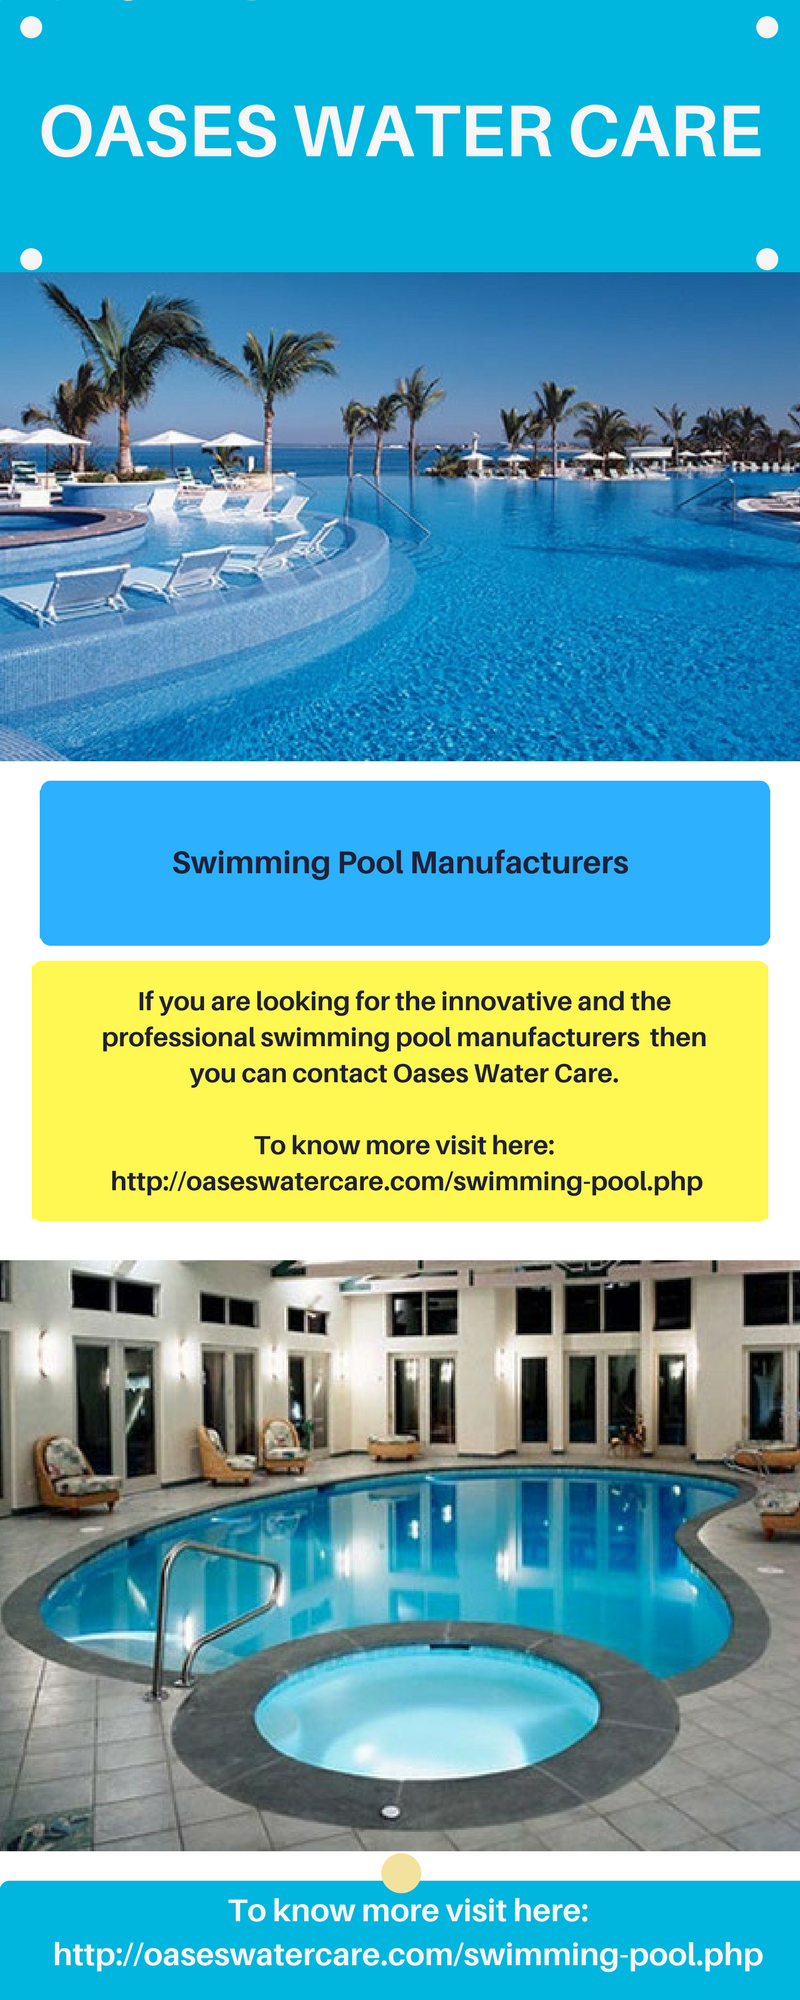 If You Are Looking For The Innovative And The Professional Swimming Pool  Manufacturers Then You Can Contact Oases Water Care. They Use The Modern  Design And ...